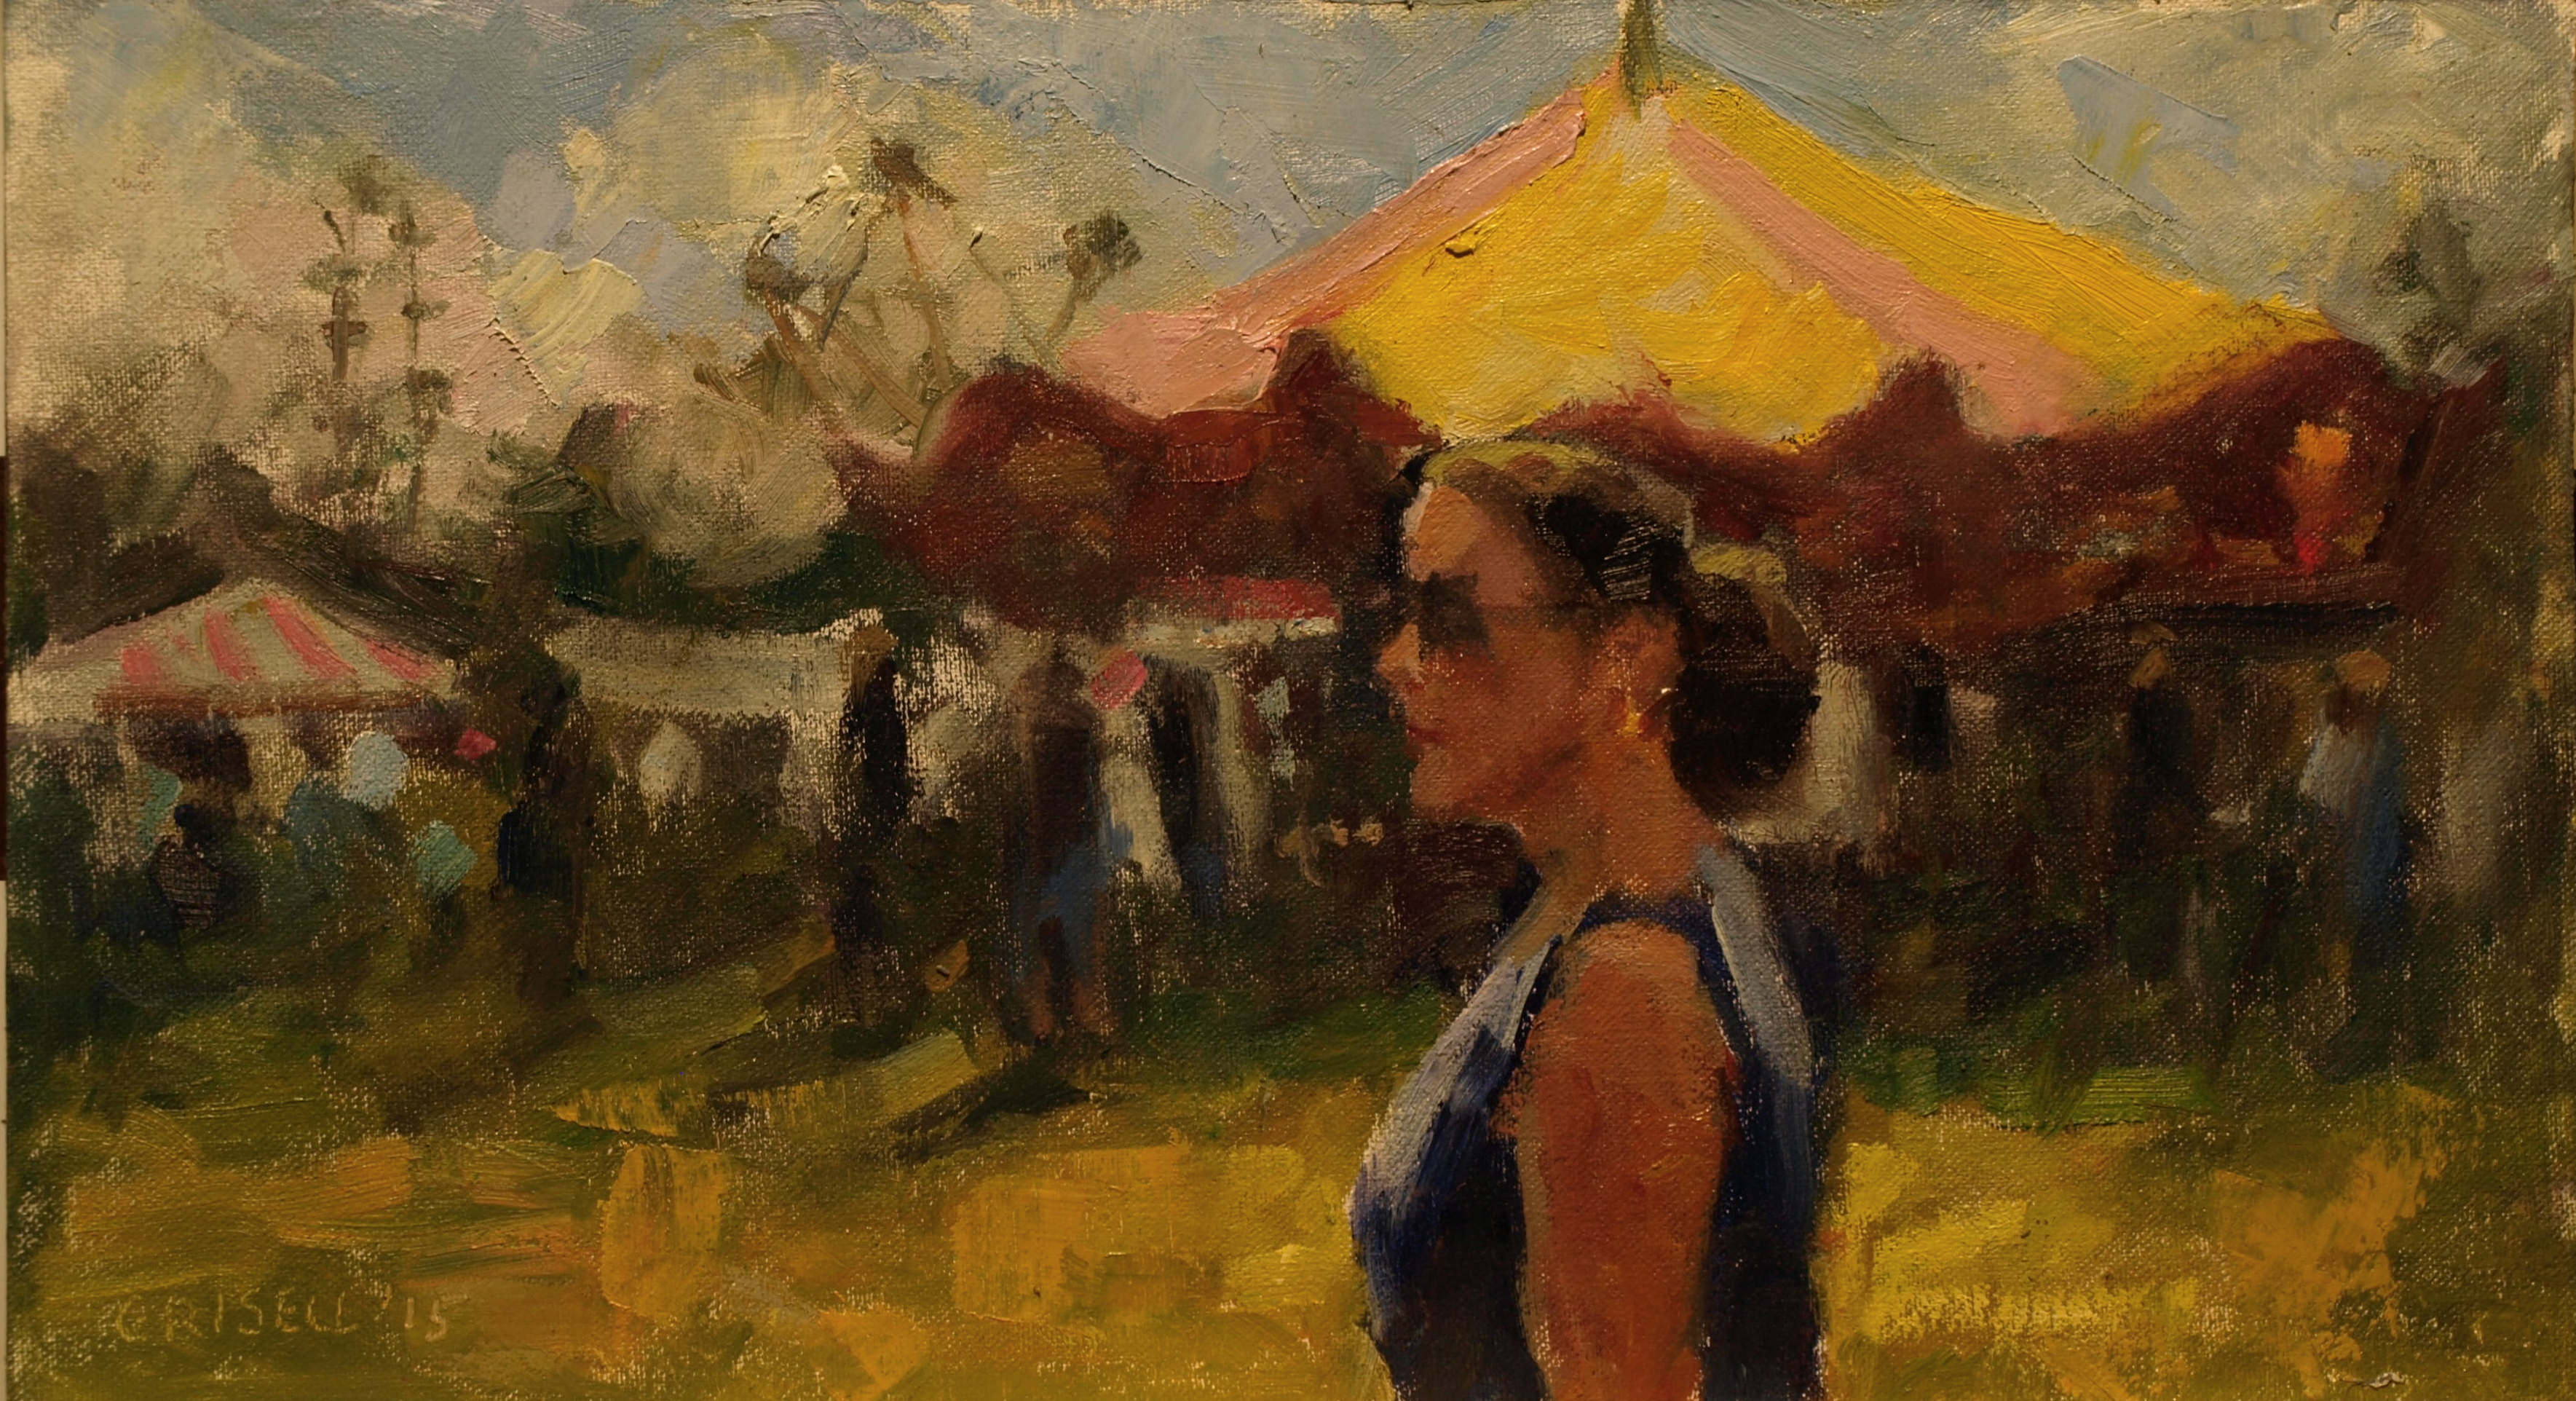 Bridgewater Fair, Oil on Canvas on Panel, 9 x 16 Inches, by Susan Grisell, $275